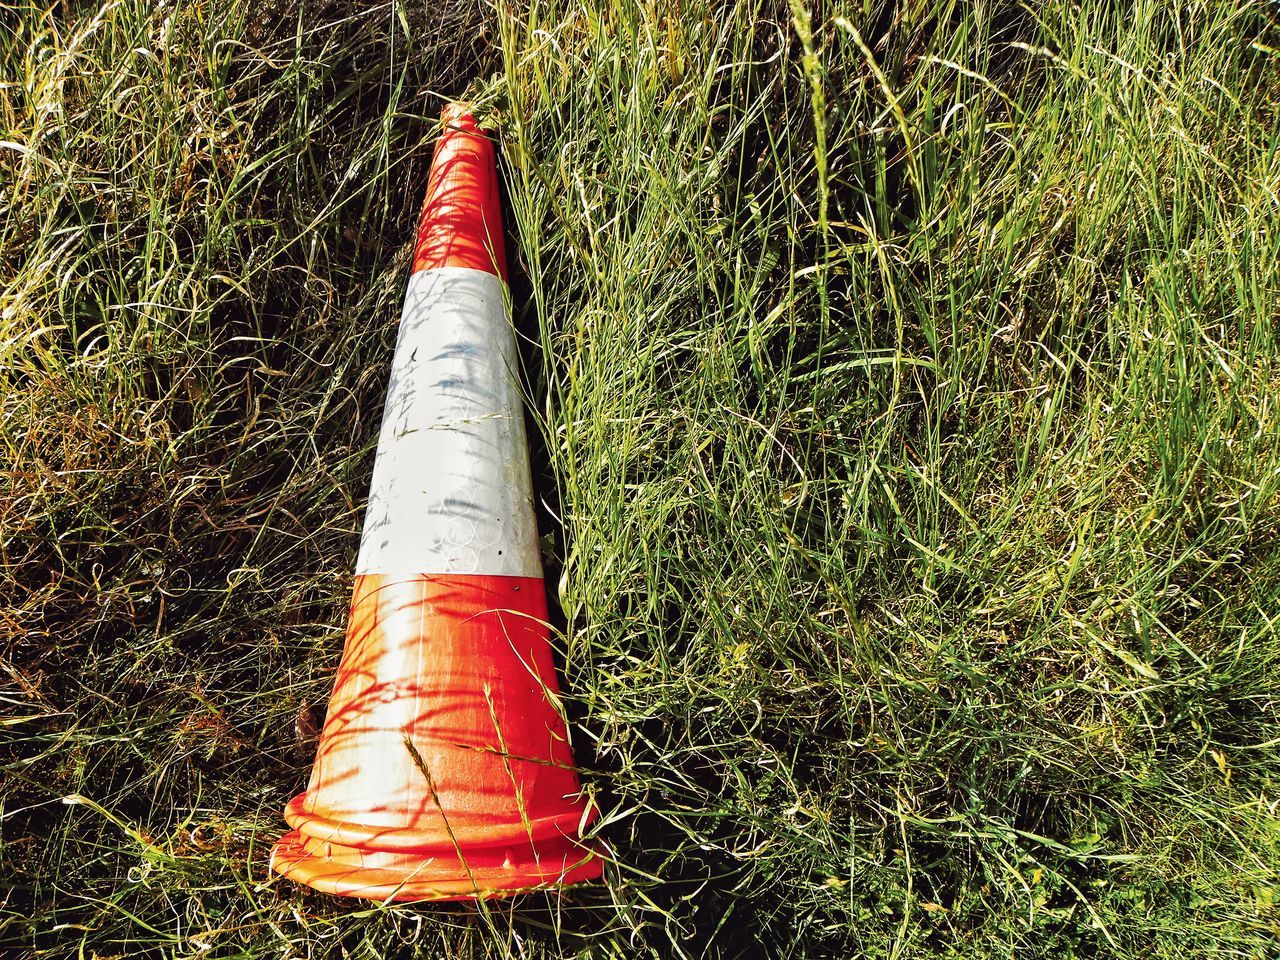 High Angle View No People Outdoors Close-up Day Cone Traffic Sign Traffic Cone Grass Traffic Abandoned Abandoned Cone Object Left On The Grass Accident Traffic Accident Sign Traffic Signs Red